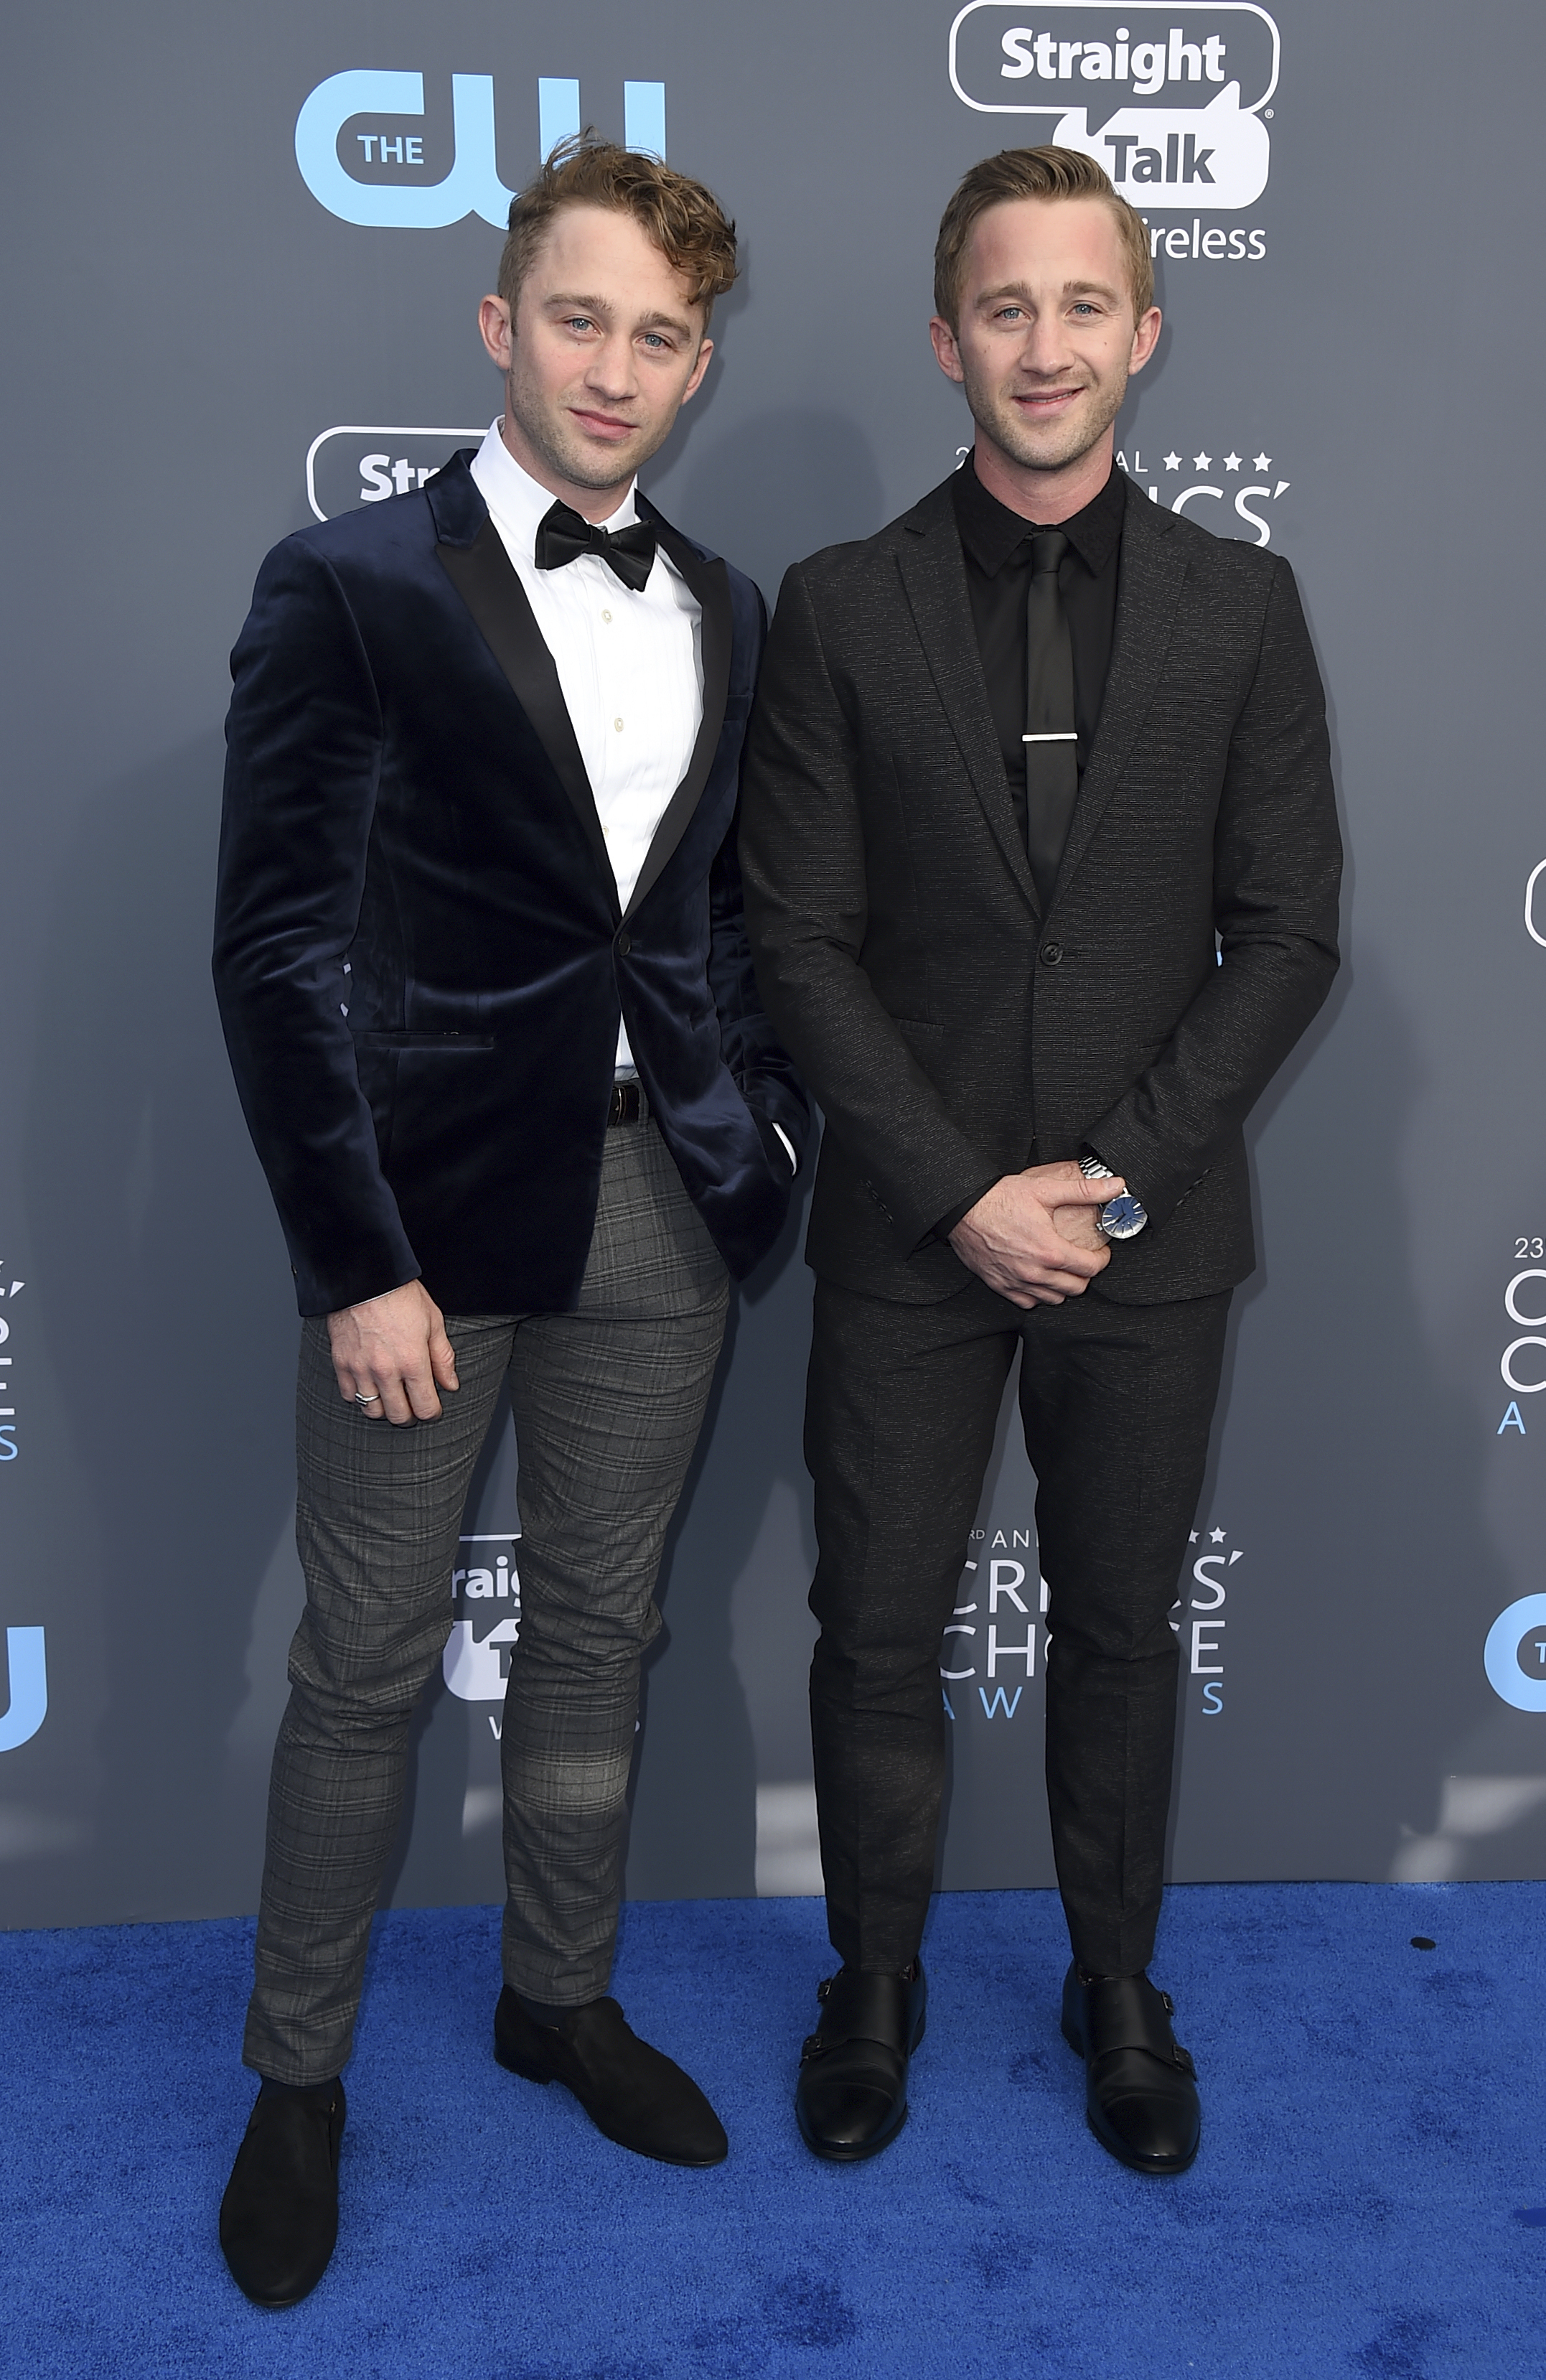 <div class='meta'><div class='origin-logo' data-origin='AP'></div><span class='caption-text' data-credit='Jordan Strauss/Invision/AP'>Russell Dennis Lewis, left, and Matthew Dennis Lewis arrive at the 23rd annual Critics' Choice Awards at the Barker Hangar on Thursday, Jan. 11, 2018, in Santa Monica, Calif.</span></div>